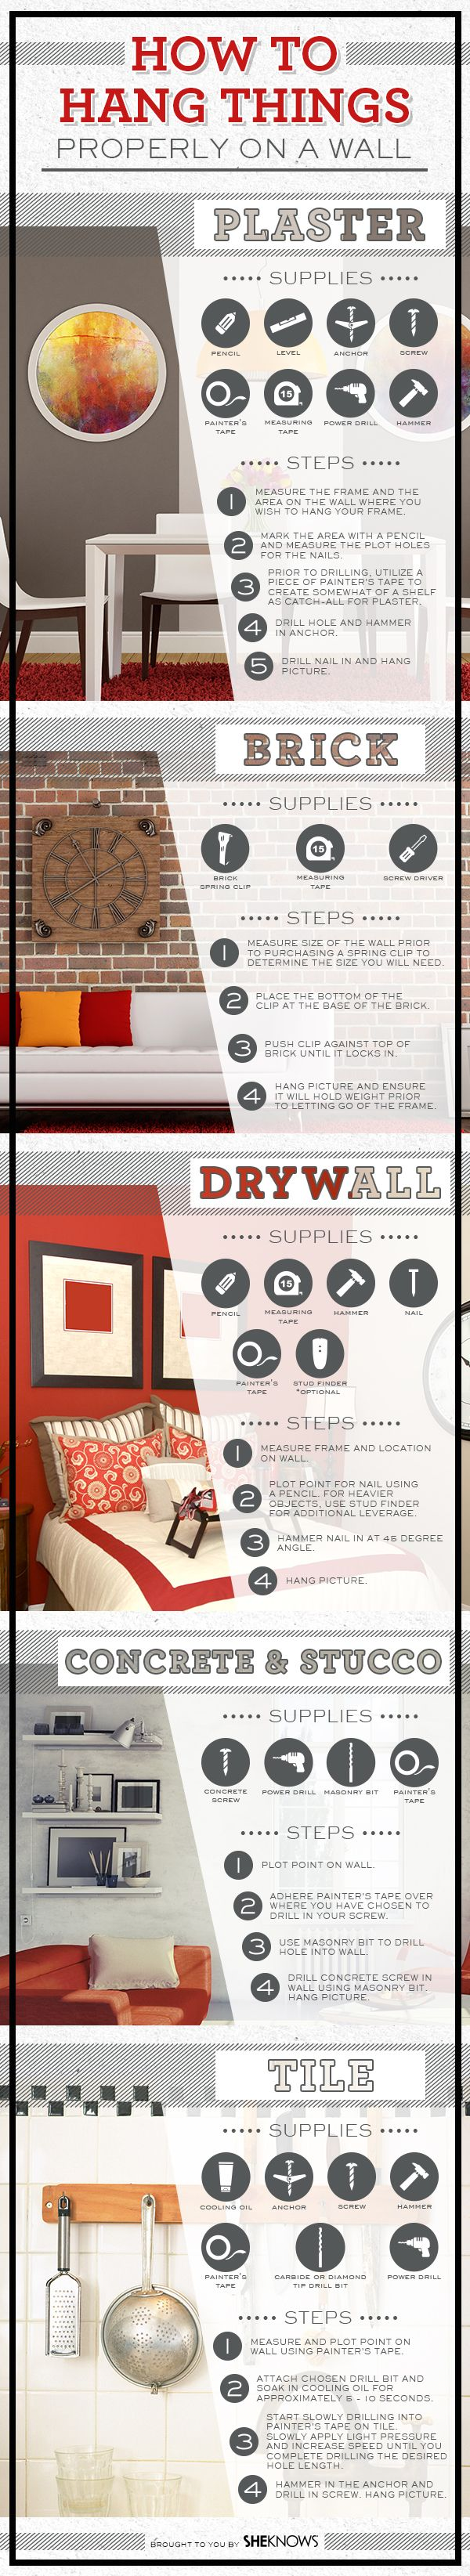 How to hang anything on the wall #alisonrosenow #infographic